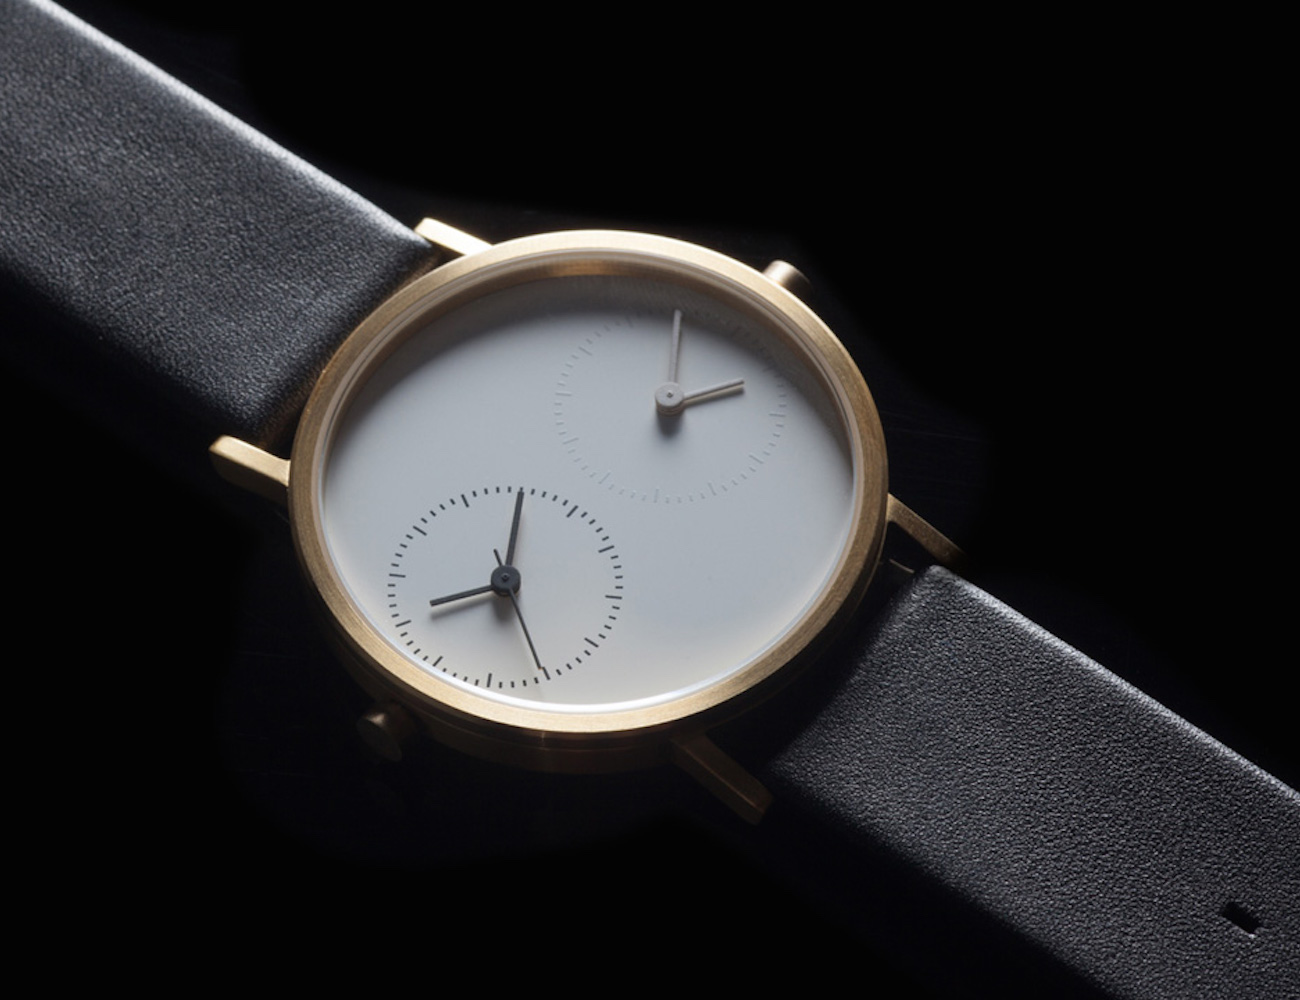 Black Long Distance Watch by Kitmen Keung – Displaying Two Different Timezones